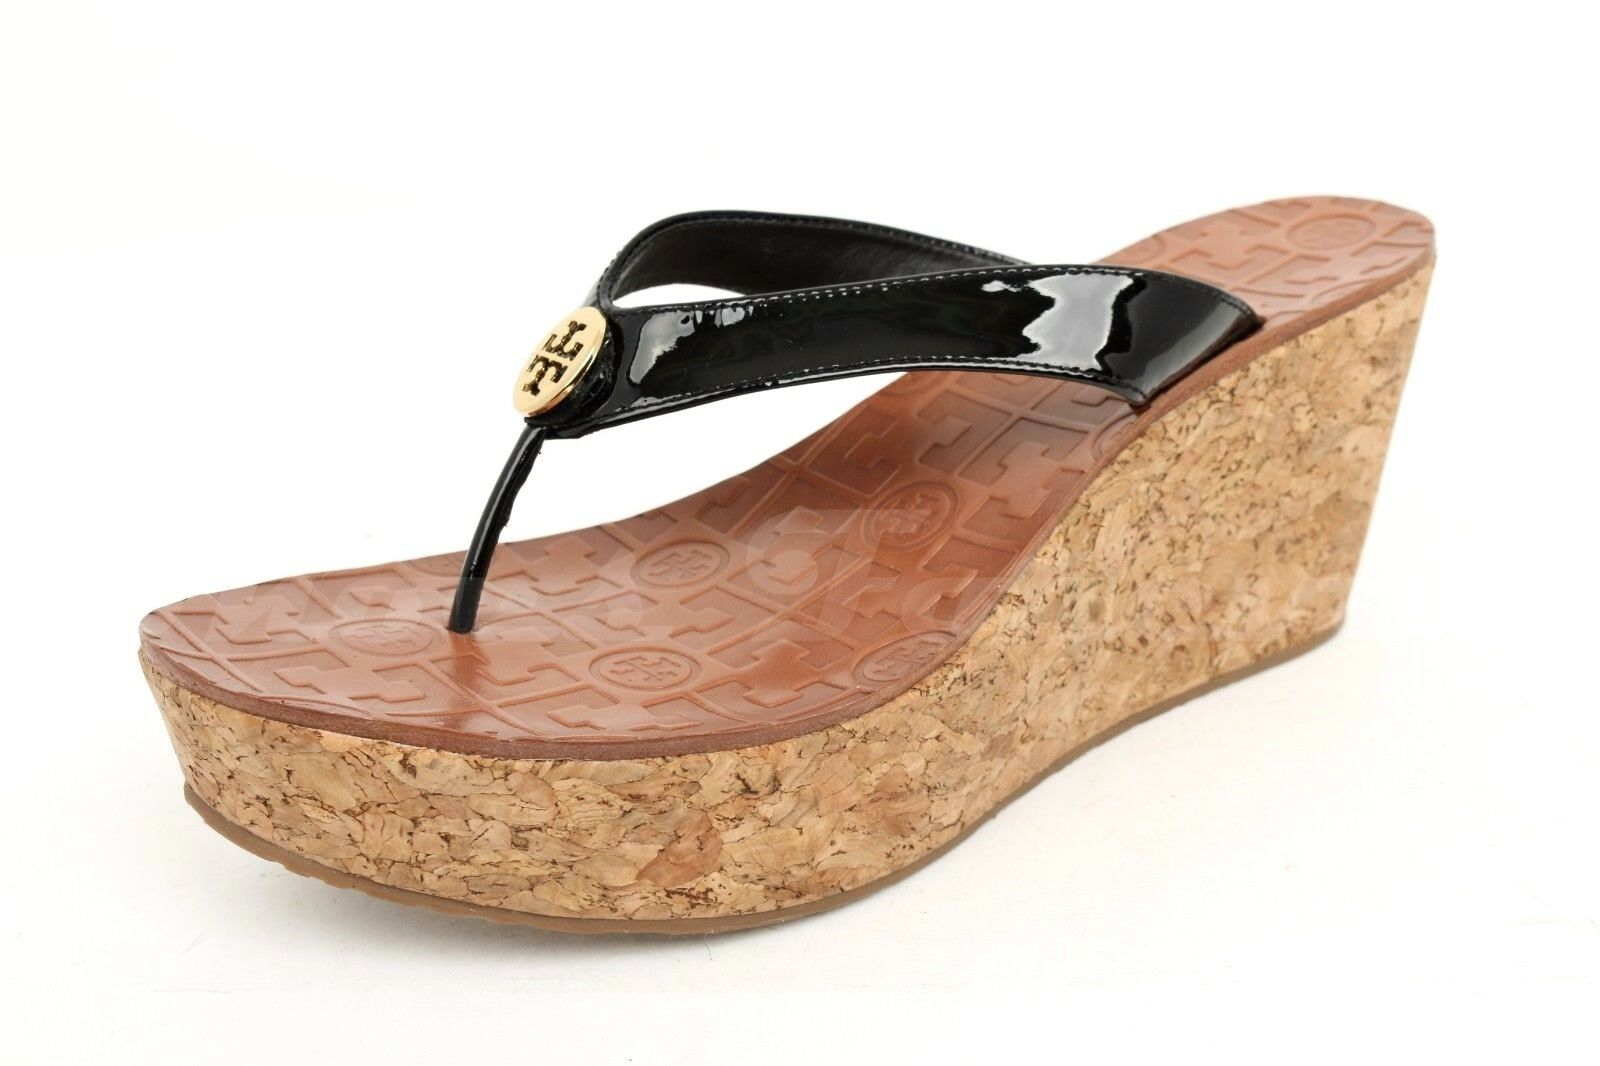 2614f4c55907 Tory Burch Thora Wedge Womens Black Patent Leather Thong Sandals 10 ...